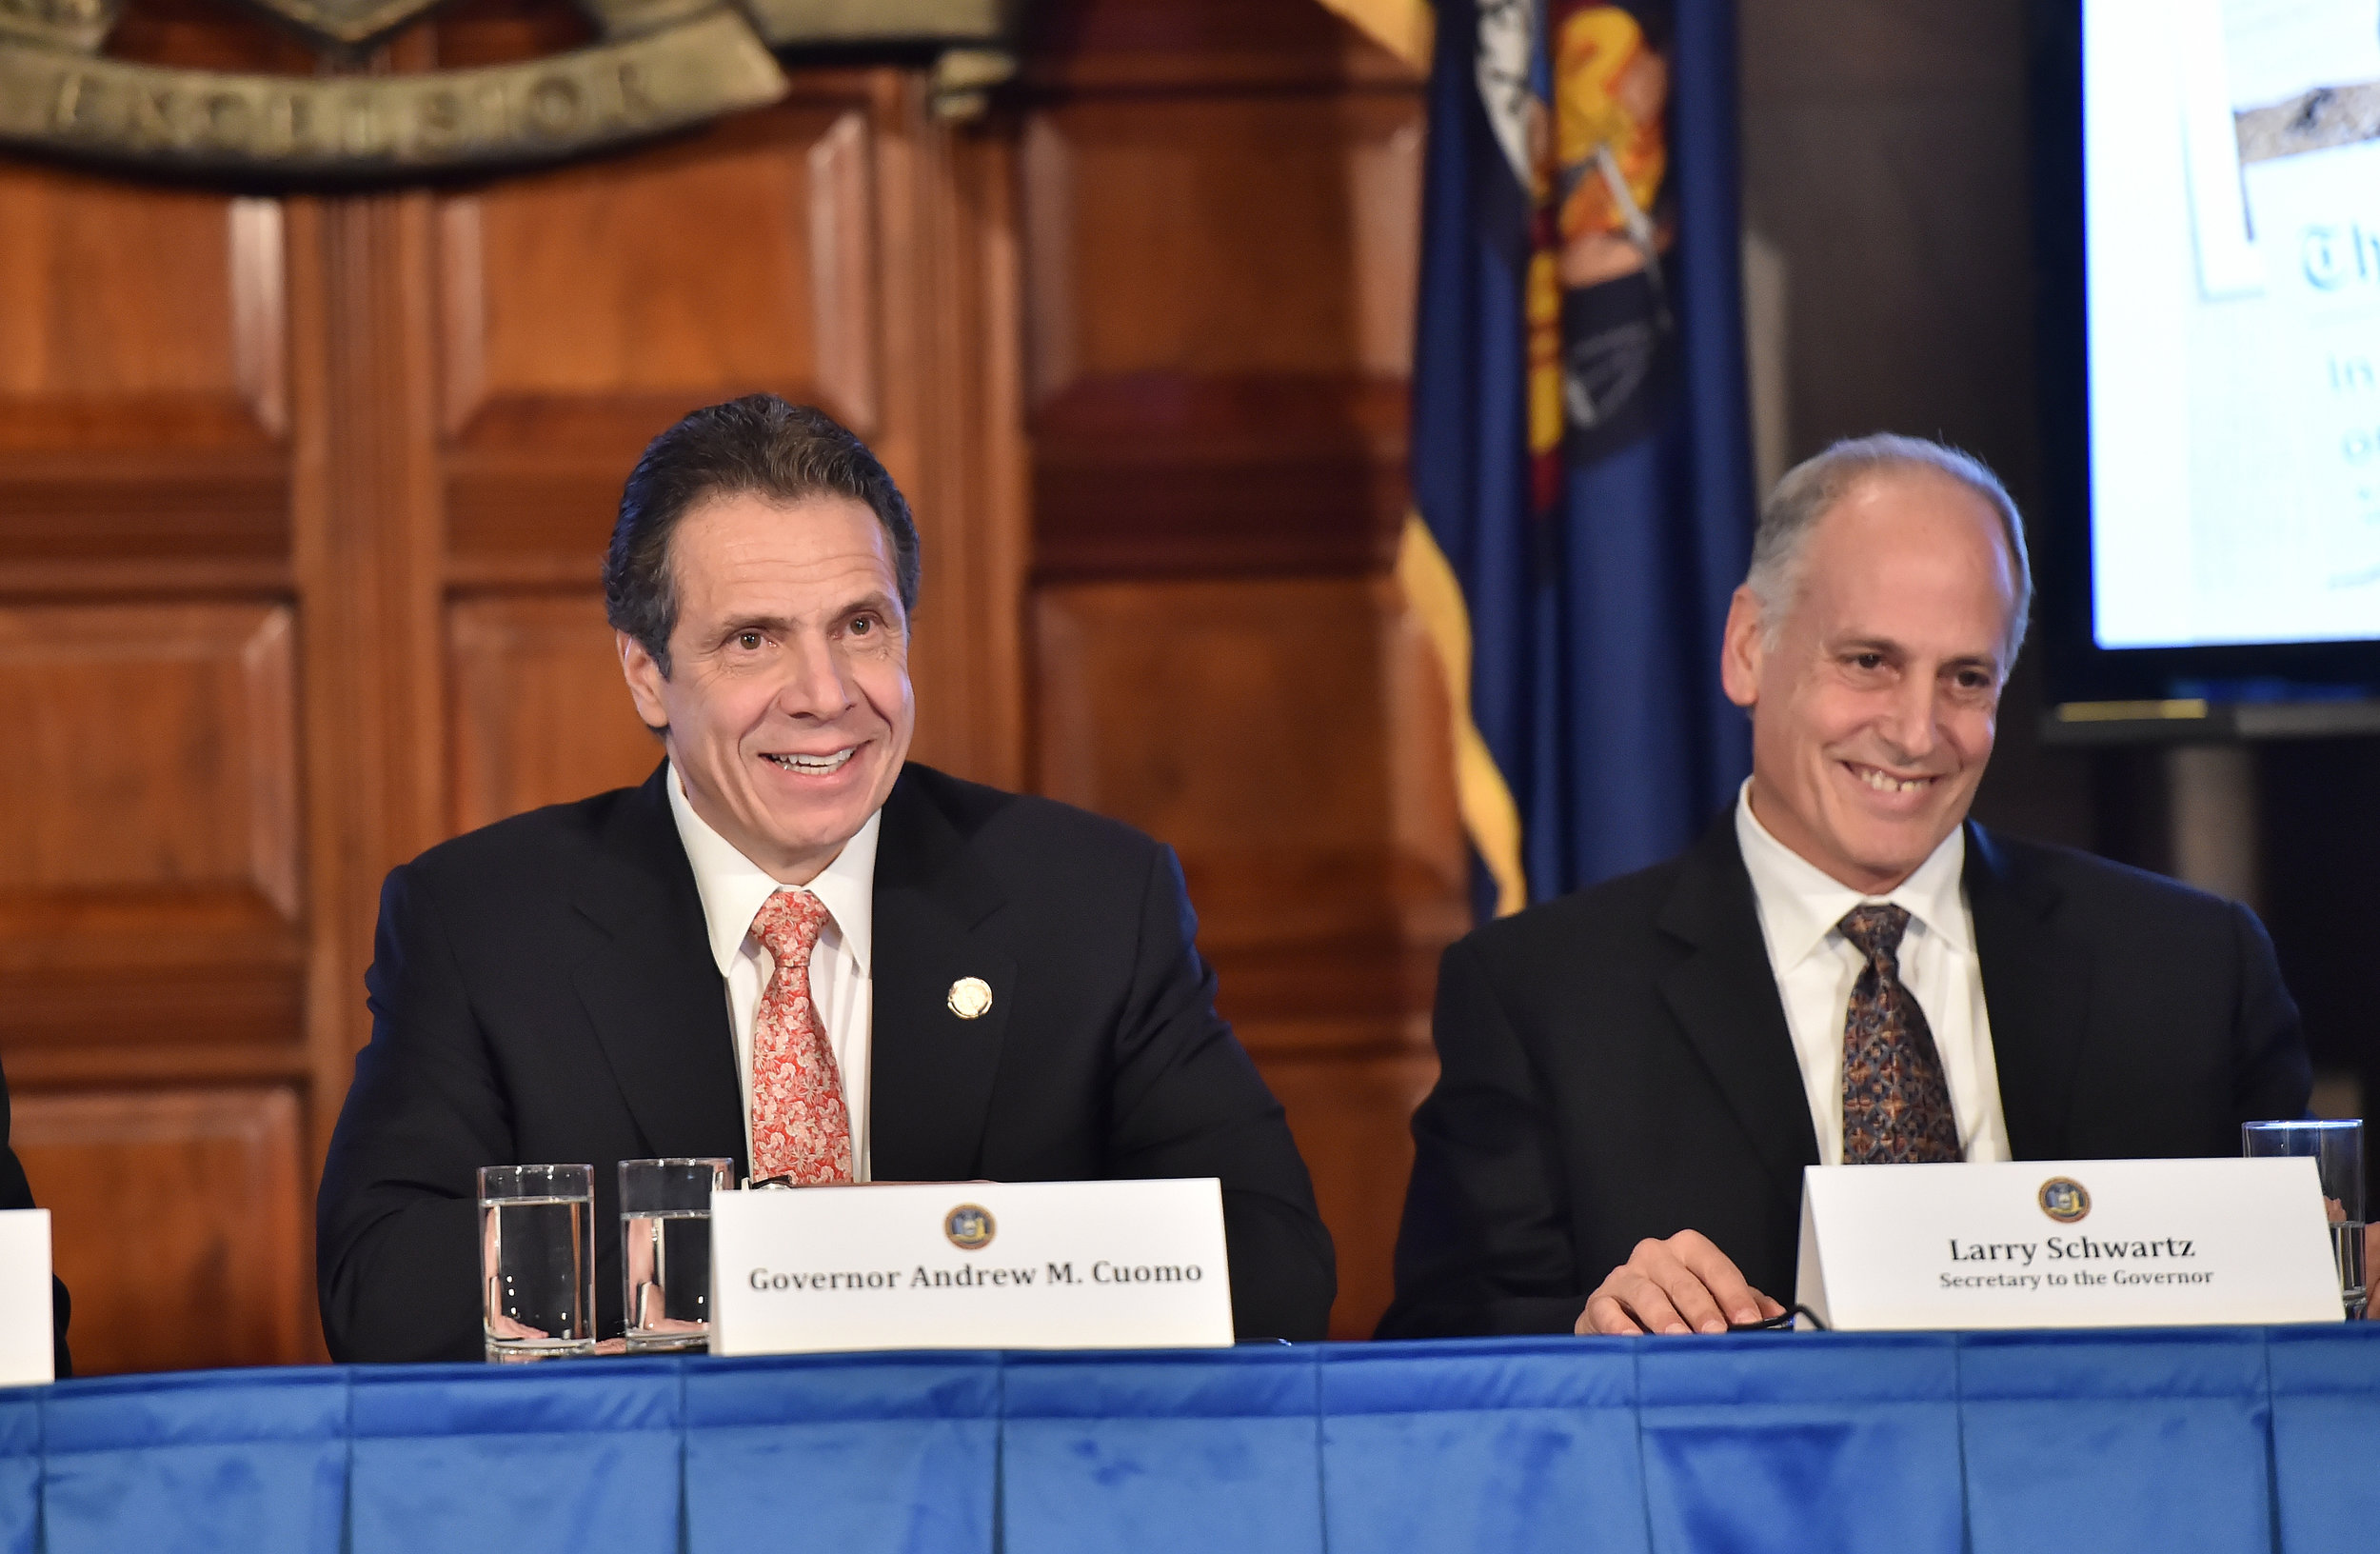 Gov.  Andrew Cuomo  with another of his former top political aides,  Lawrence Schwartz , during a Cuomo administration cabinet meeting in December 2014, shortly before Mr. Schwartz reportedly resigned. Source : Kevin P. Coughlin/Office of the Governor/Flickr/Public Domain